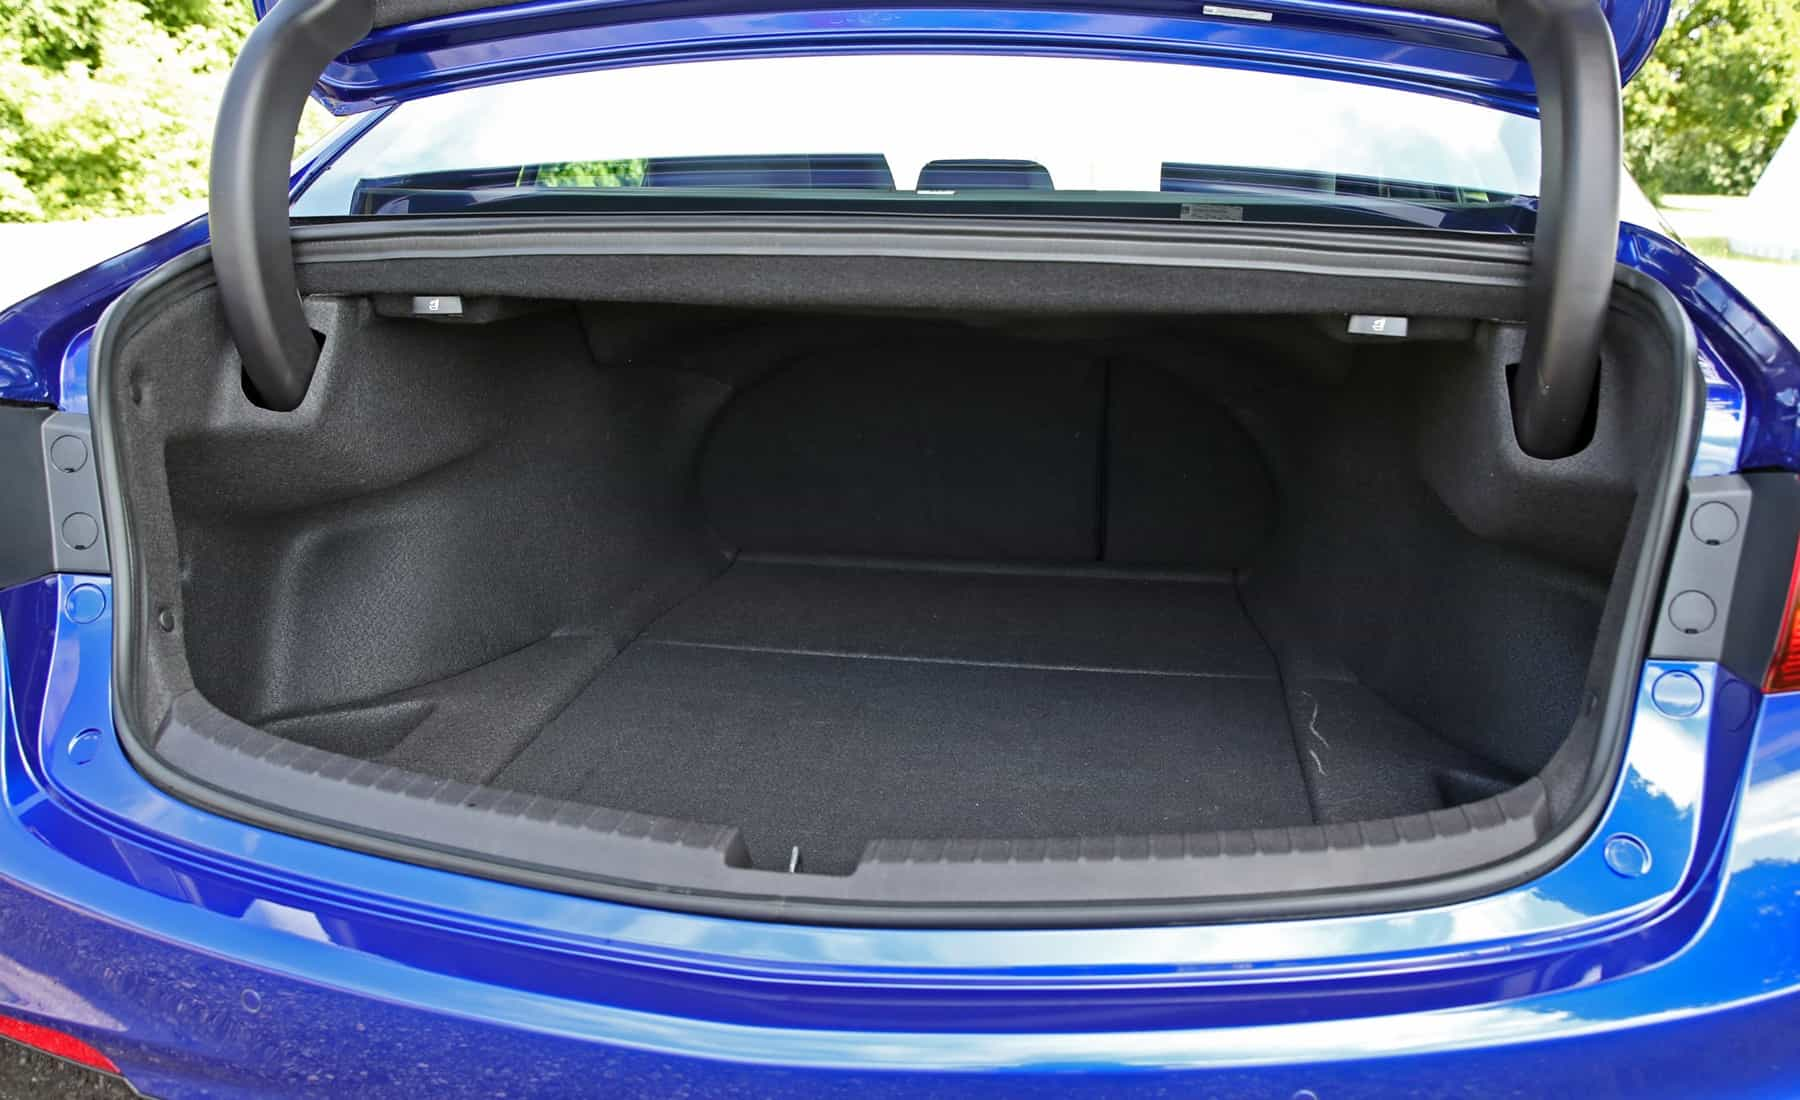 2018 Acura TLX Interior View Trunk (Photo 36 of 46)